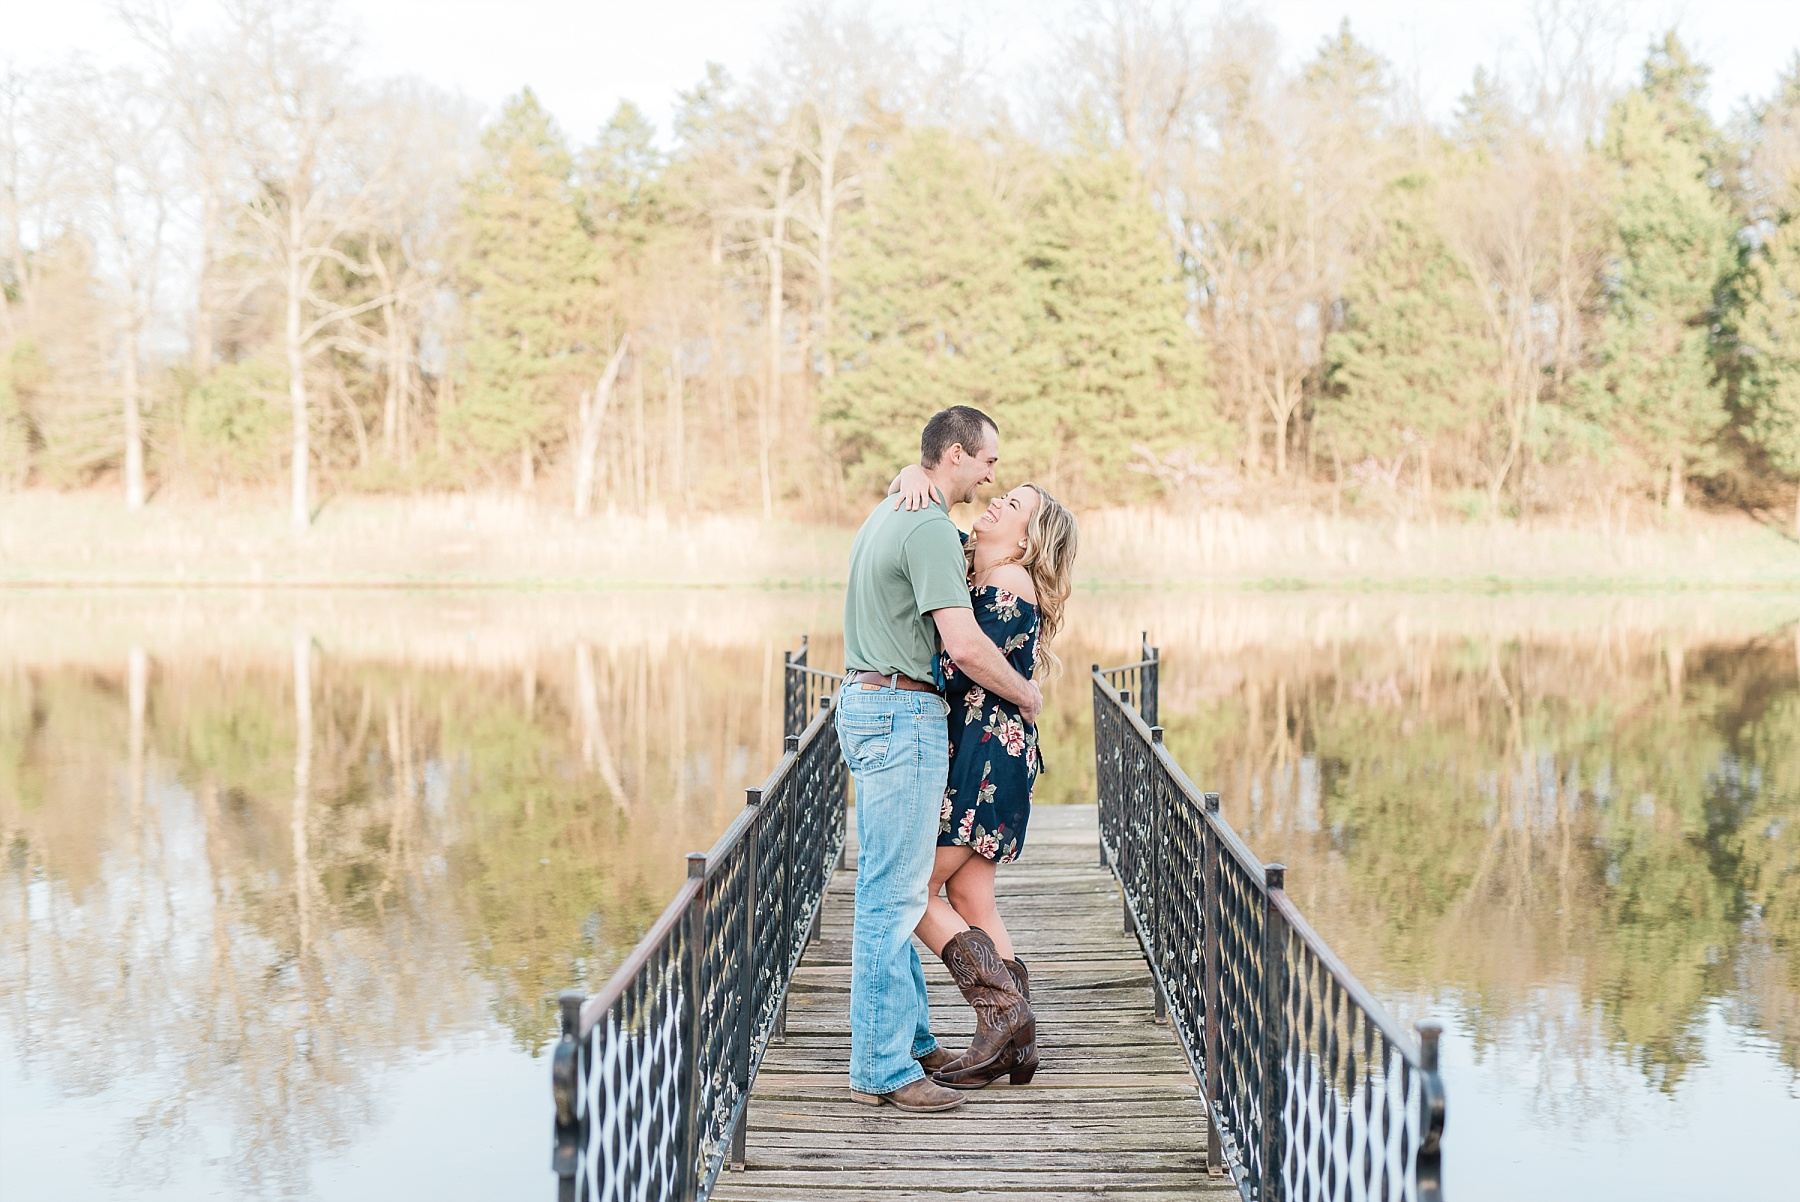 Spring Sunset Farm Engagement Session on Family Farm in Missouri Midwest by Kelsi Kliethermes Photography_0002.jpg